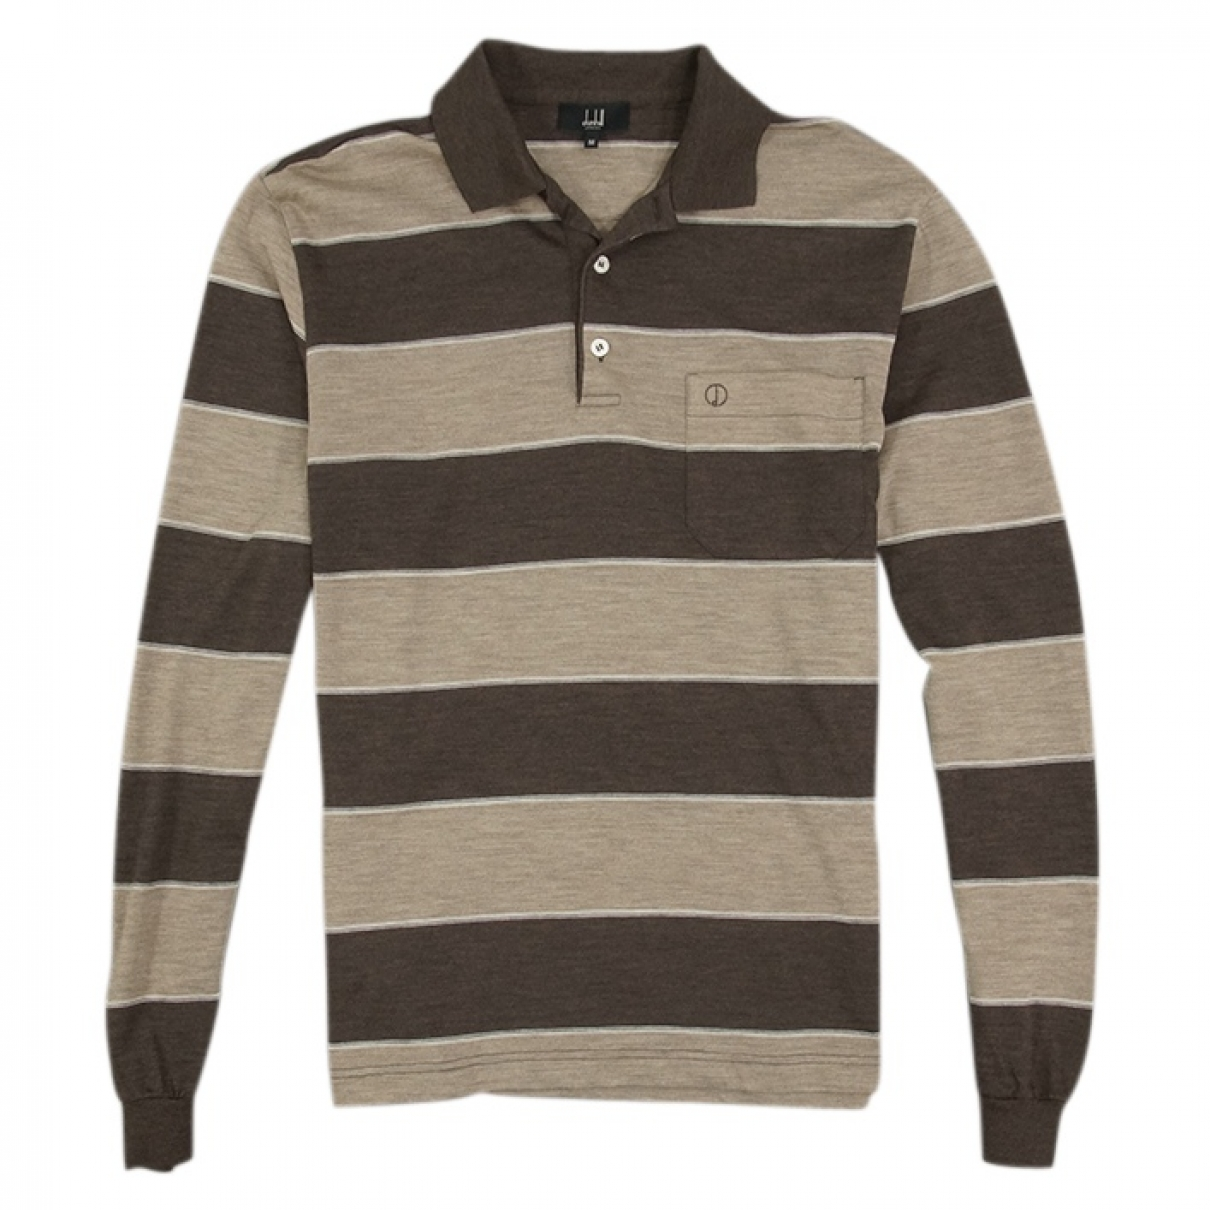 Alfred Dunhill \N Brown Polo shirts for Men M International